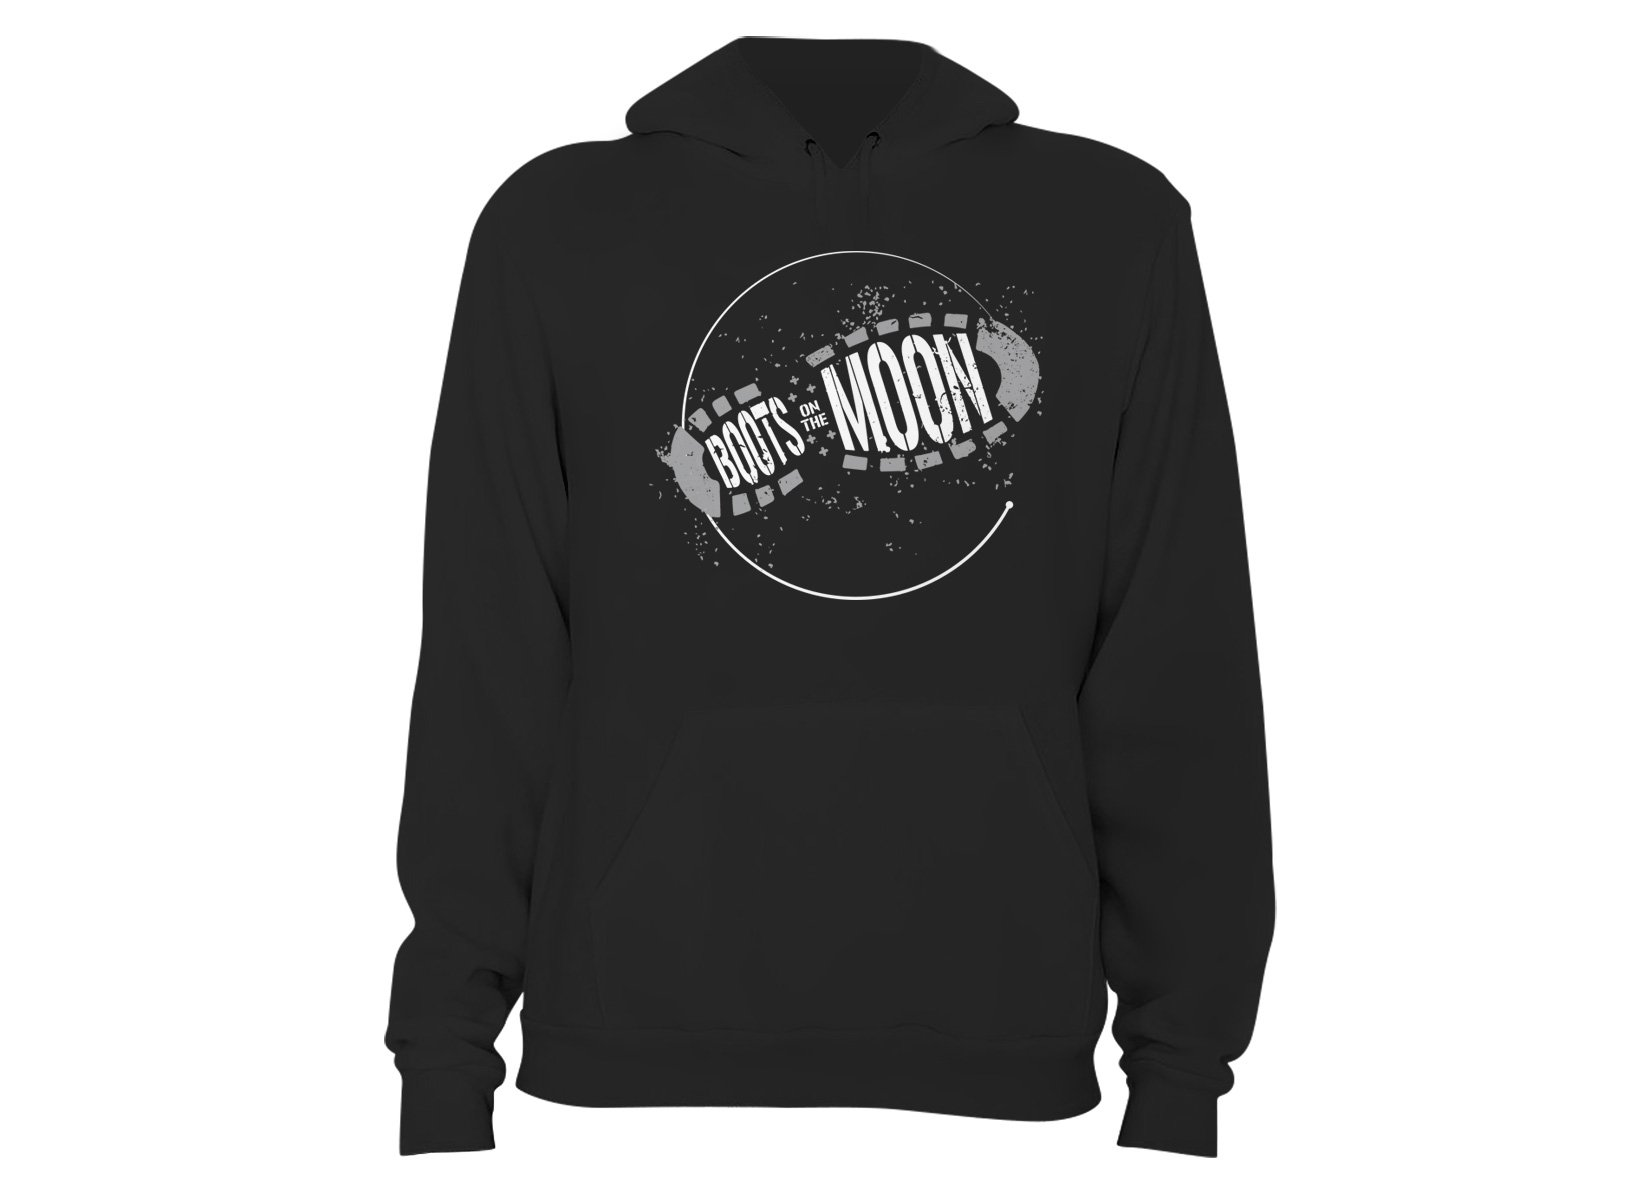 Boots On The Moon on Hoodie